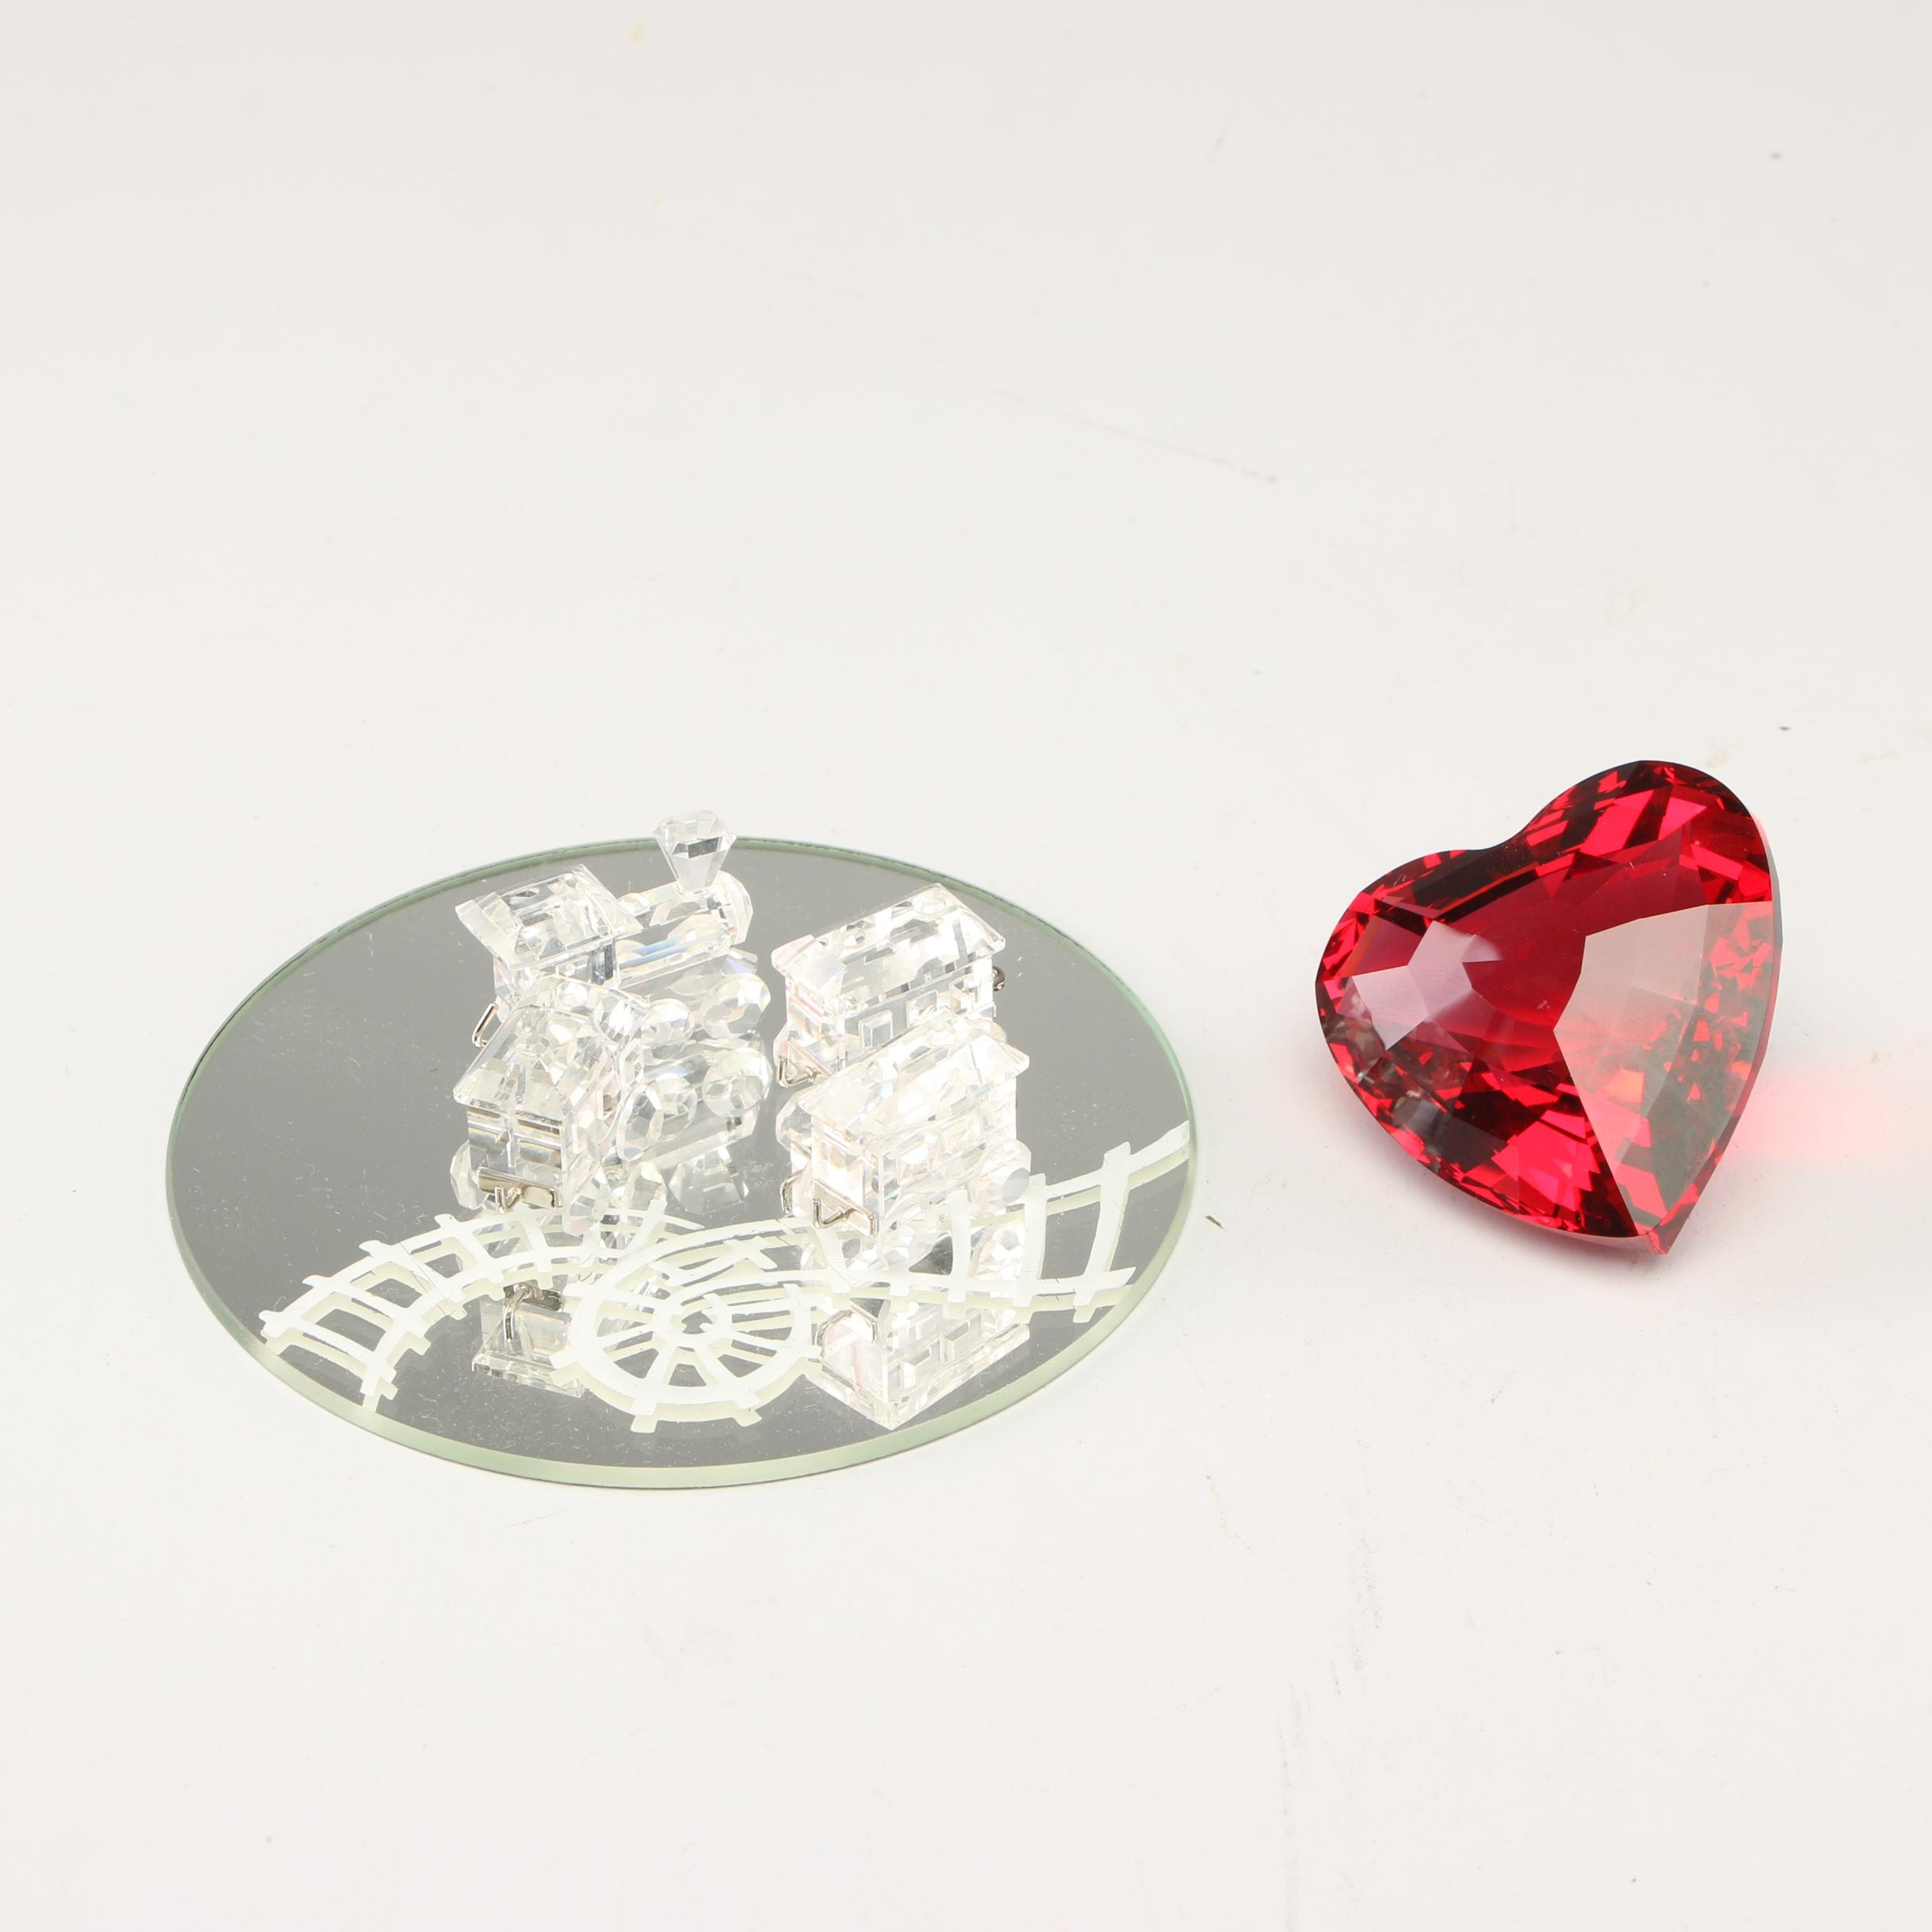 Swarovski Crystal Heart and Other Crystal Figurines, Late 20th Century